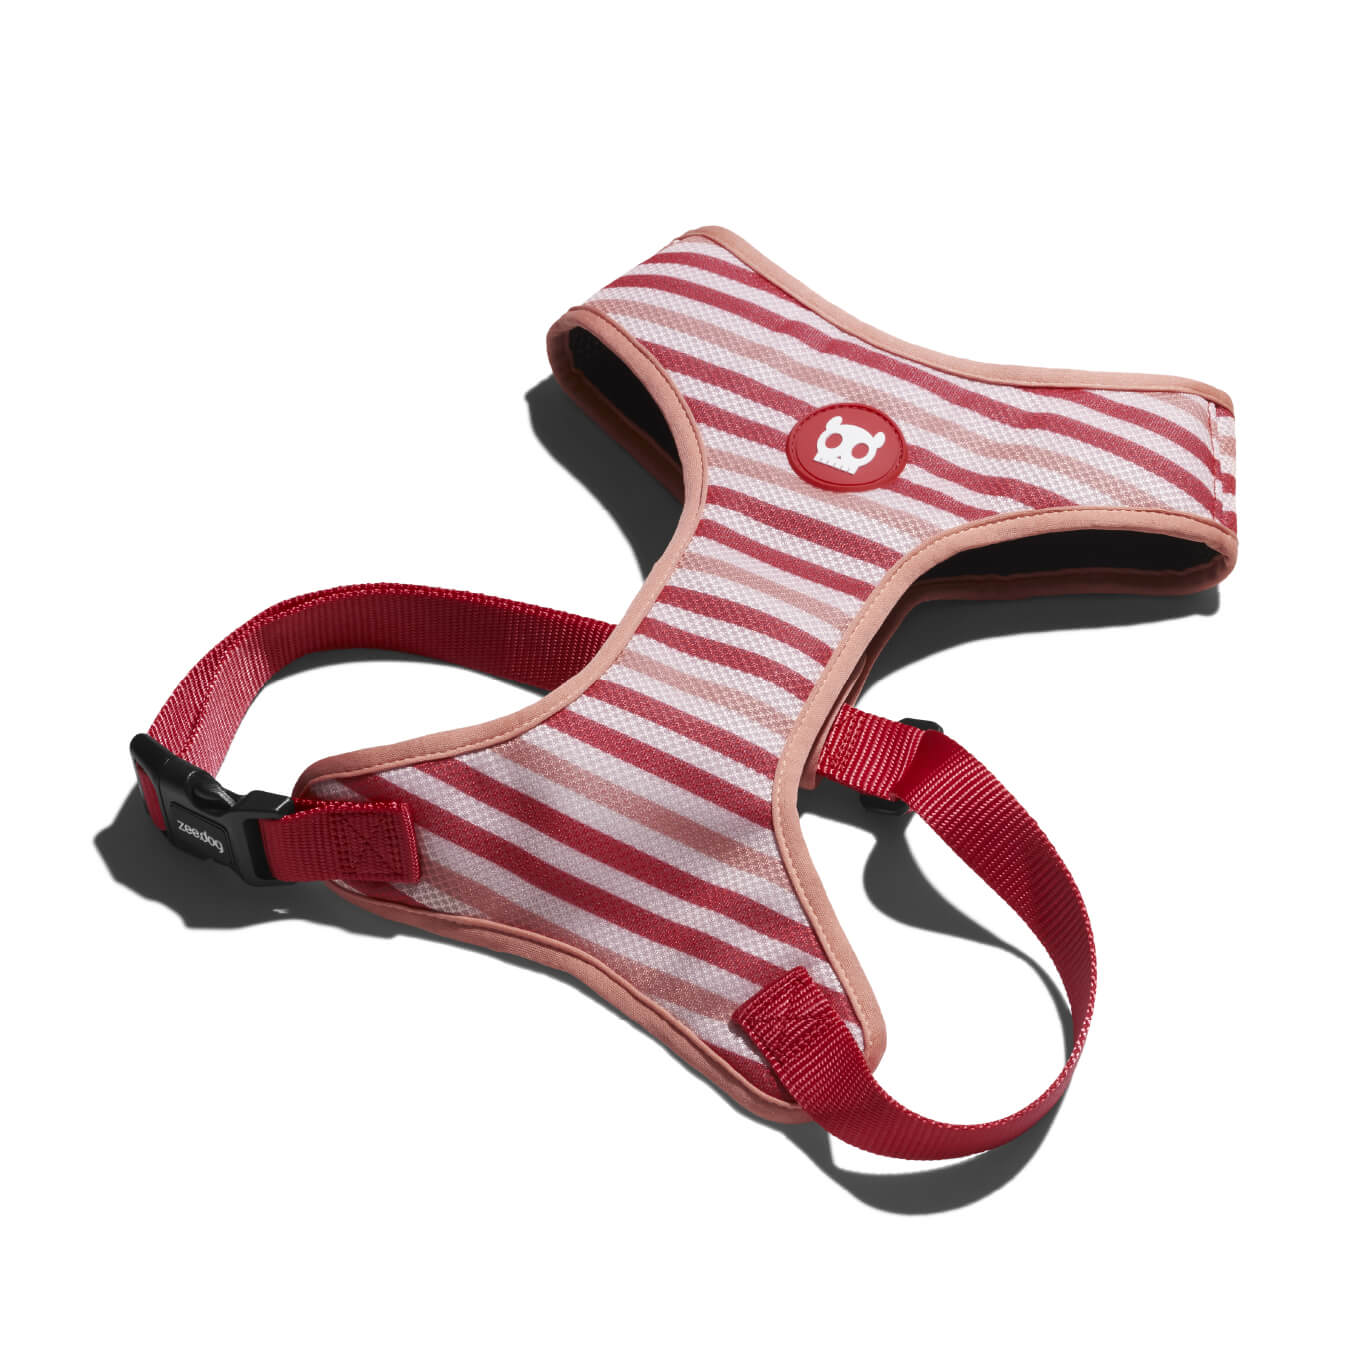 Zee.Dog Peppermint Air Mesh Harness - Dogs, Harnesses, New, Walking, Zee.Dog - Vanillapup - Online Pet Shop